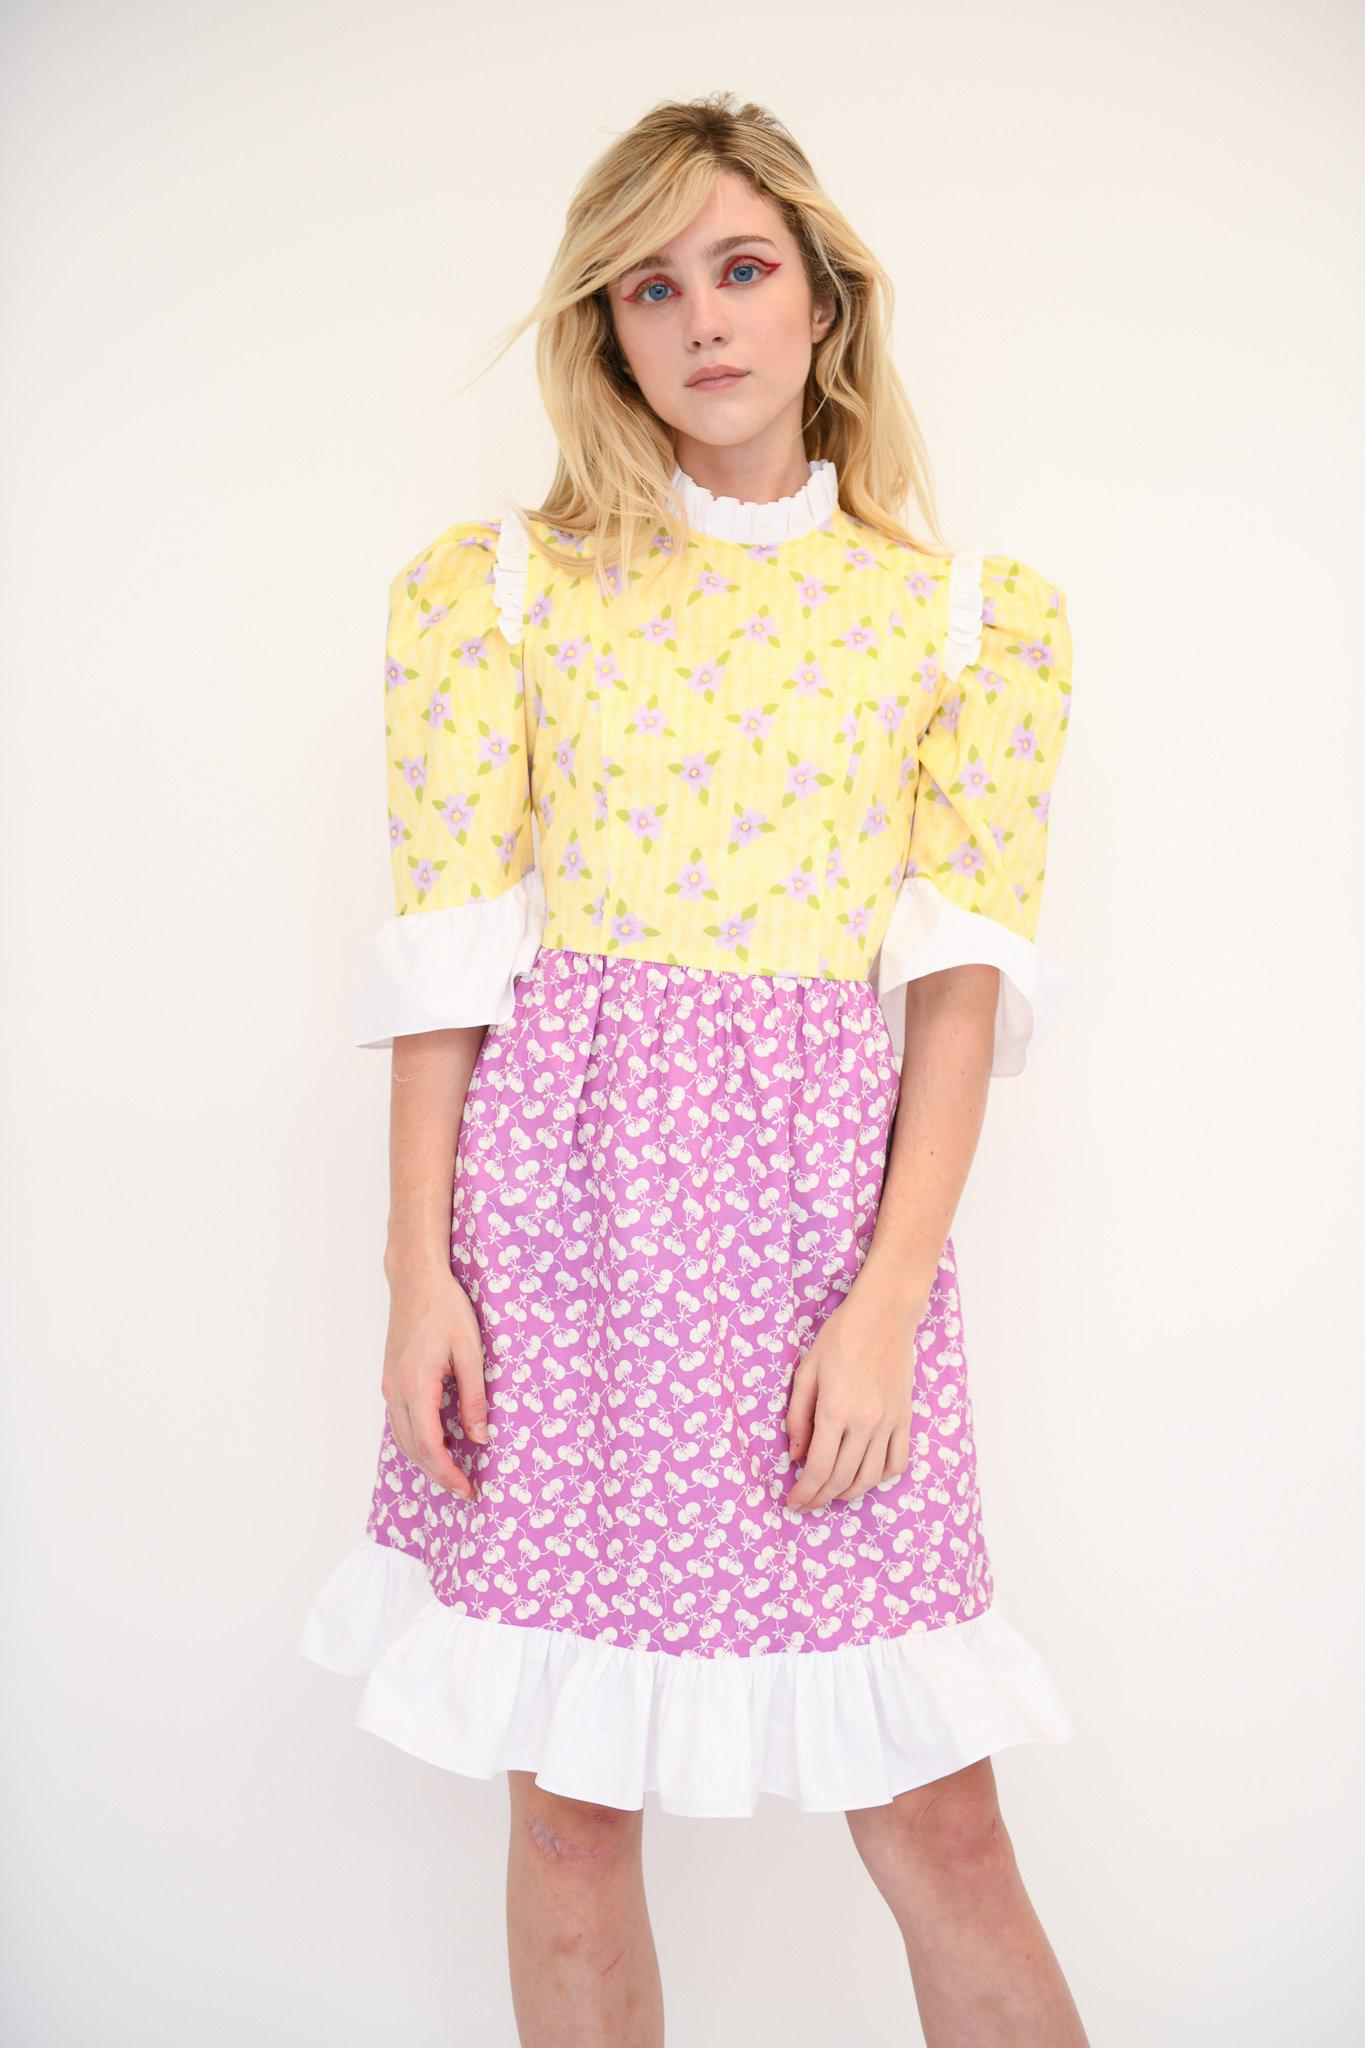 Spring Prairie Dress in Vintage Yellow and Purple Fabric